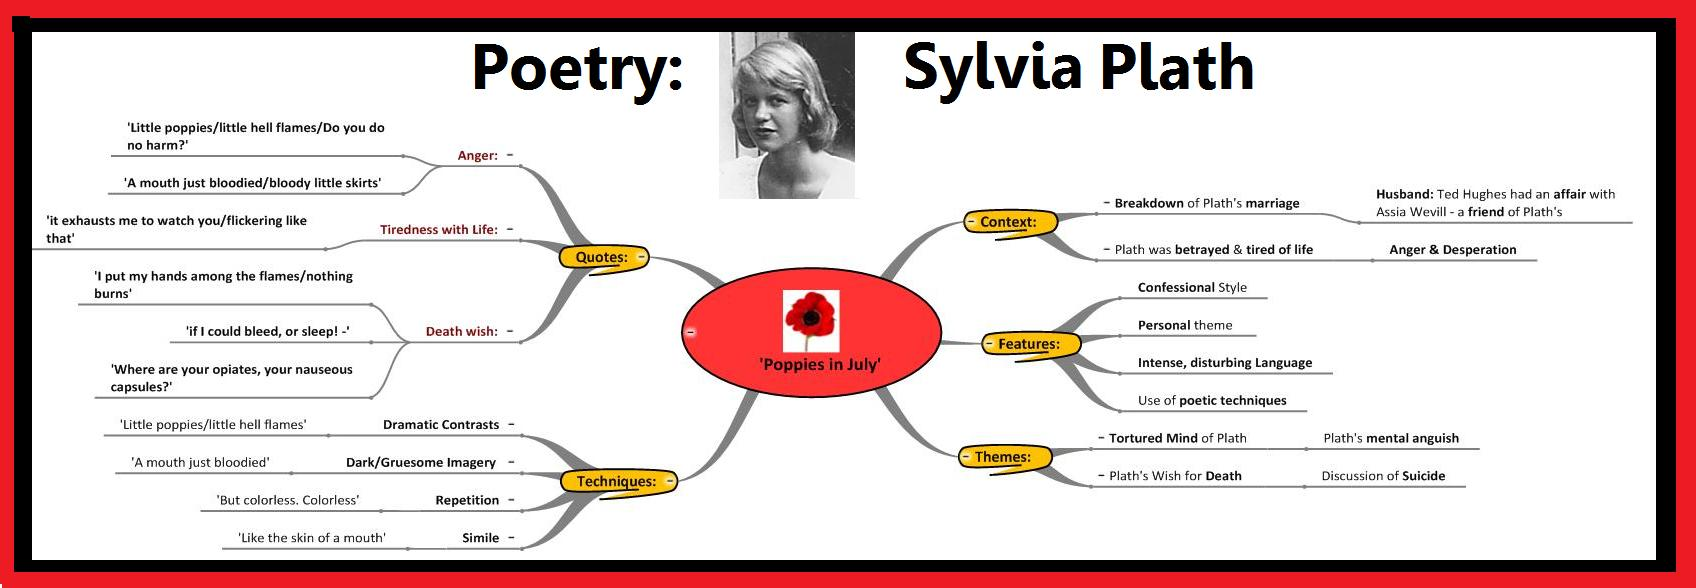 "sylvia plath sow essay Then write an essay in which you of the sow is enhanced by such features as diction, devices of sound, images, and allusions ""sow"" by sylvia plath god knows."